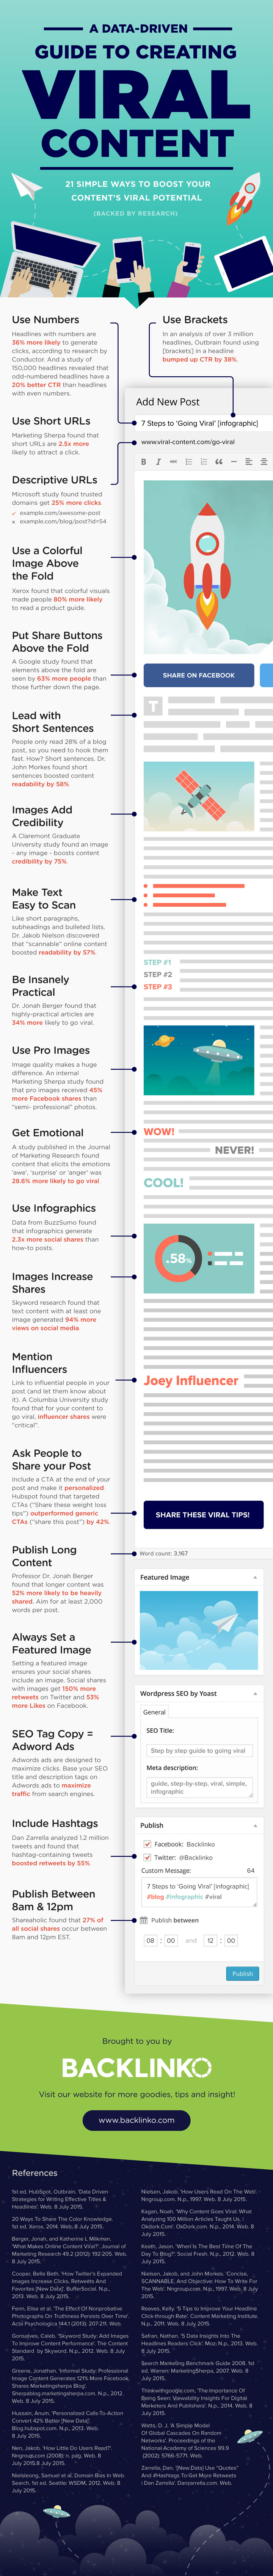 21-Simple-Ways-to-Create-the-Best-Viral-Content-INFOGRAPHIC